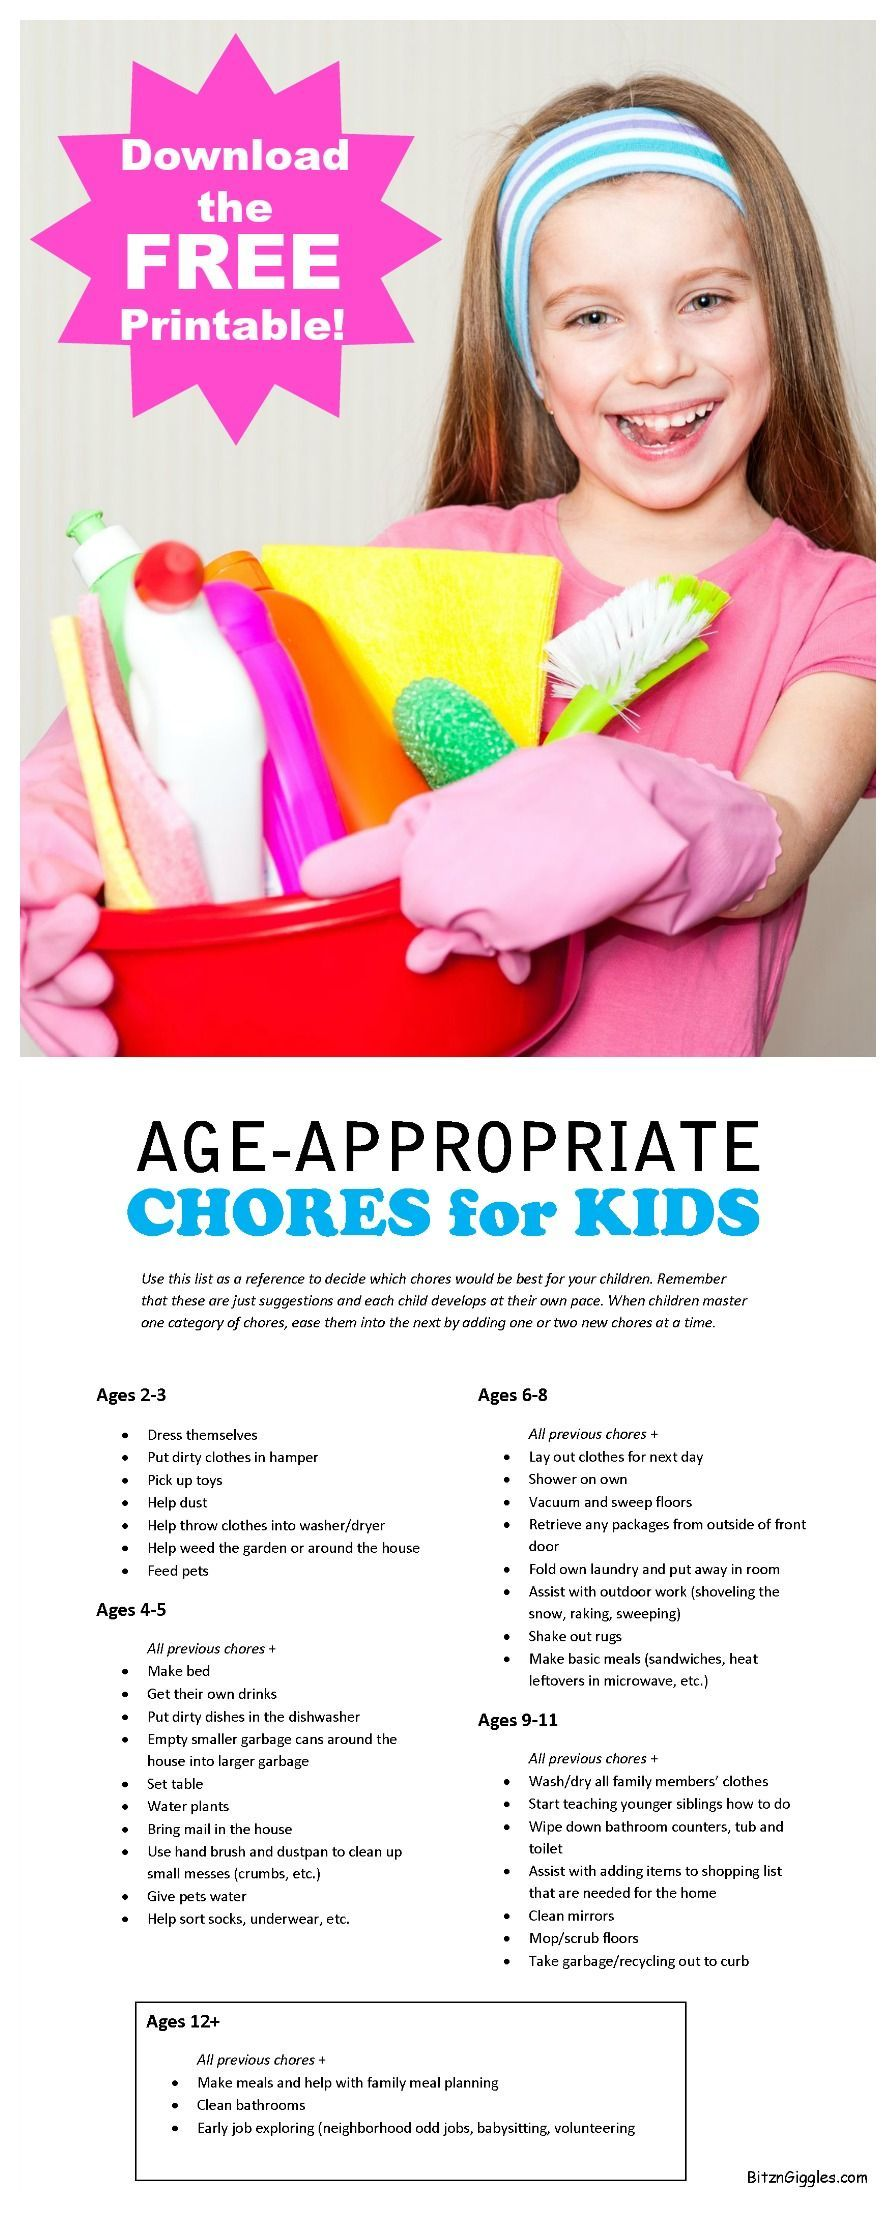 AgeAppropriate Chores for Kids with FREE Printable in